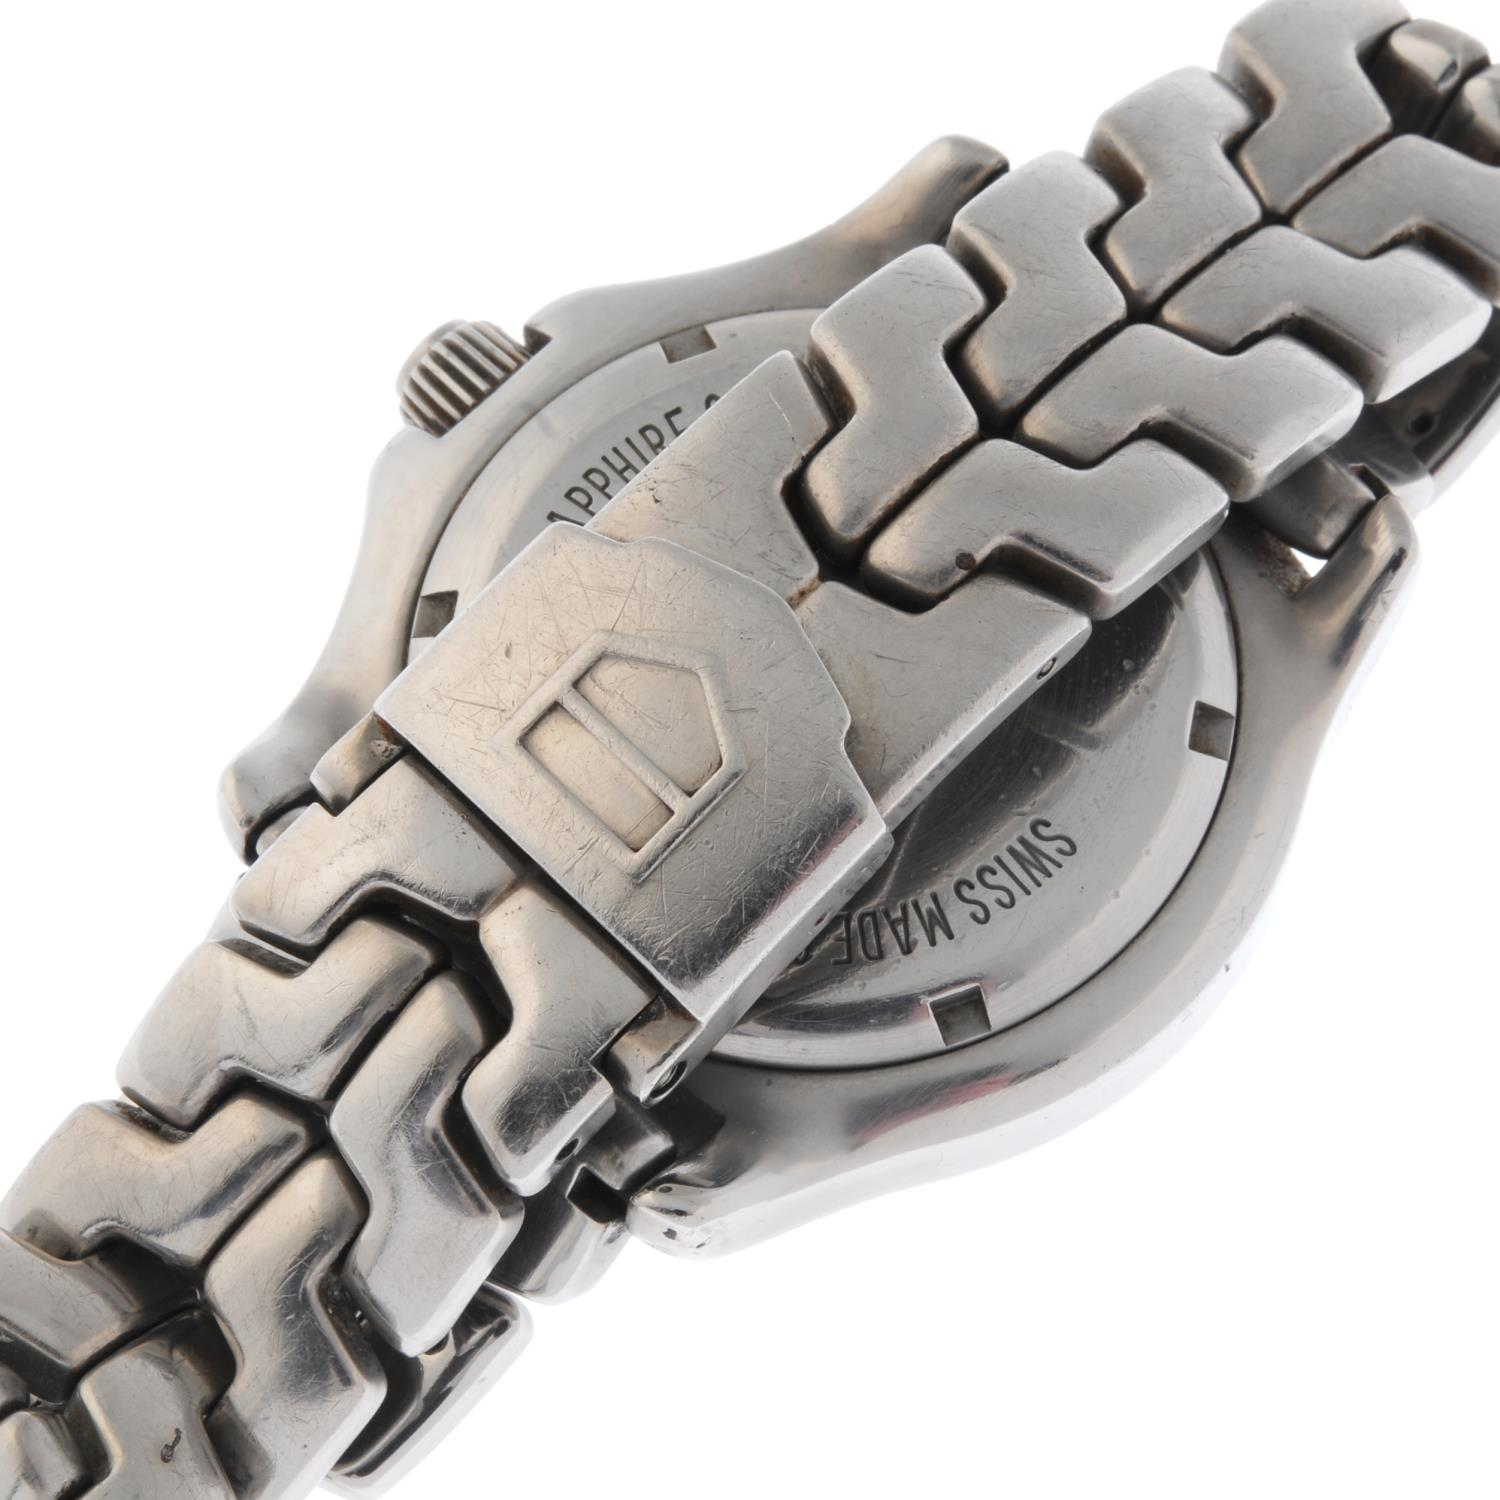 TAG HEUER - a Link bracelet watch. - Image 2 of 4